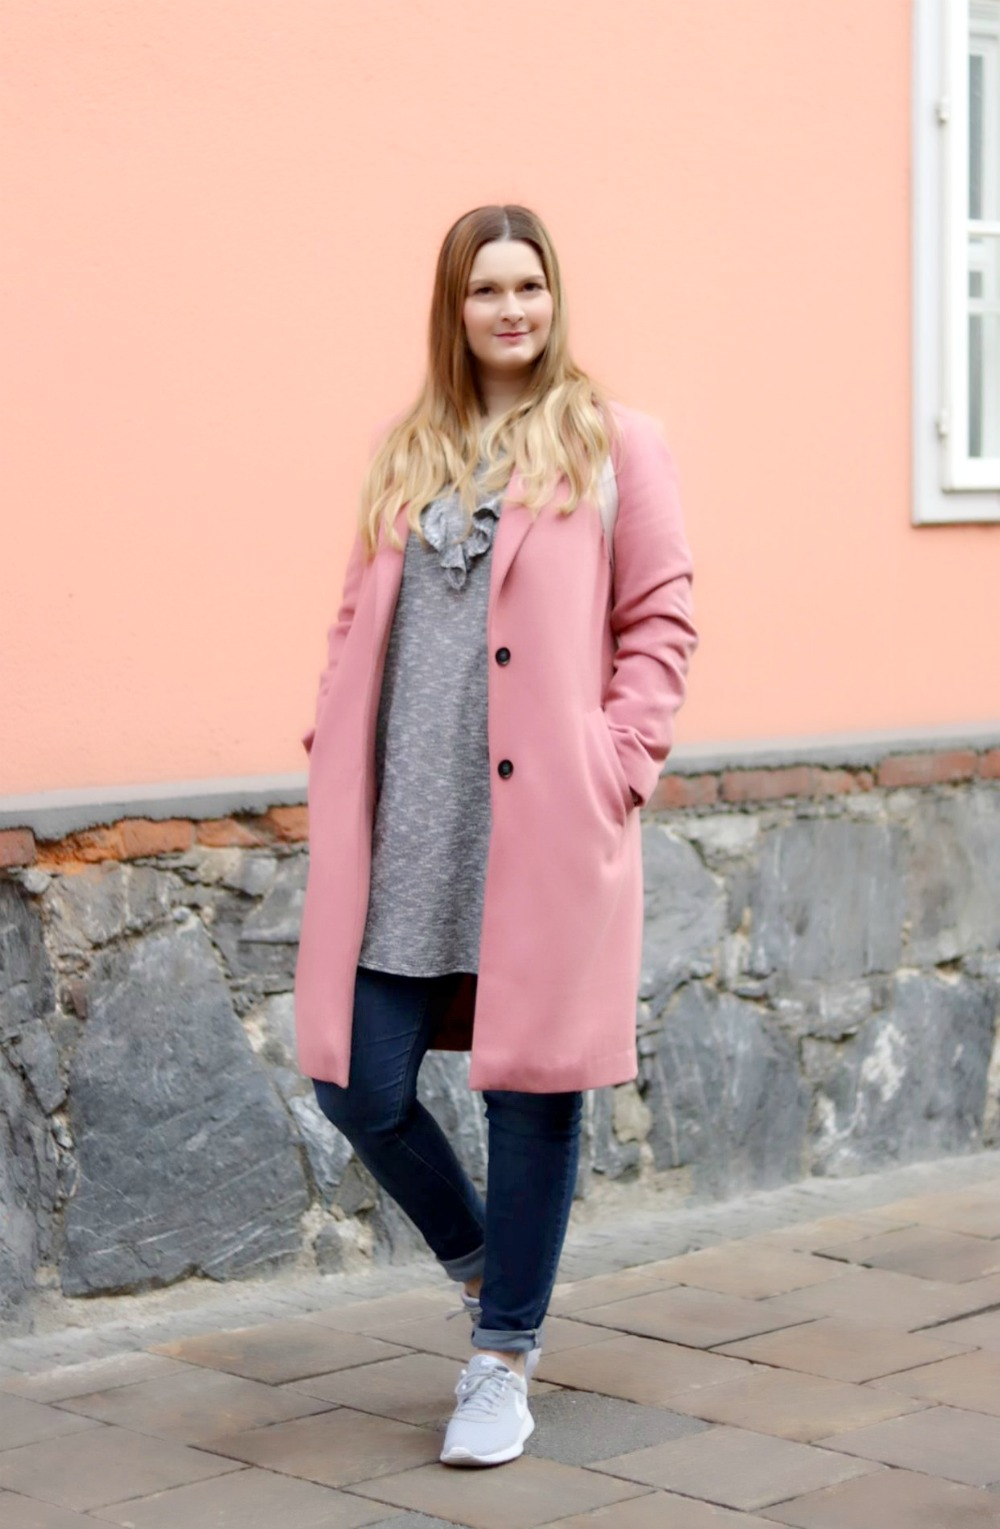 brand new 815a0 3aad7 Outfit} Meine Blogger-Uniform: Rosa Mantel meets Nike Sneaker